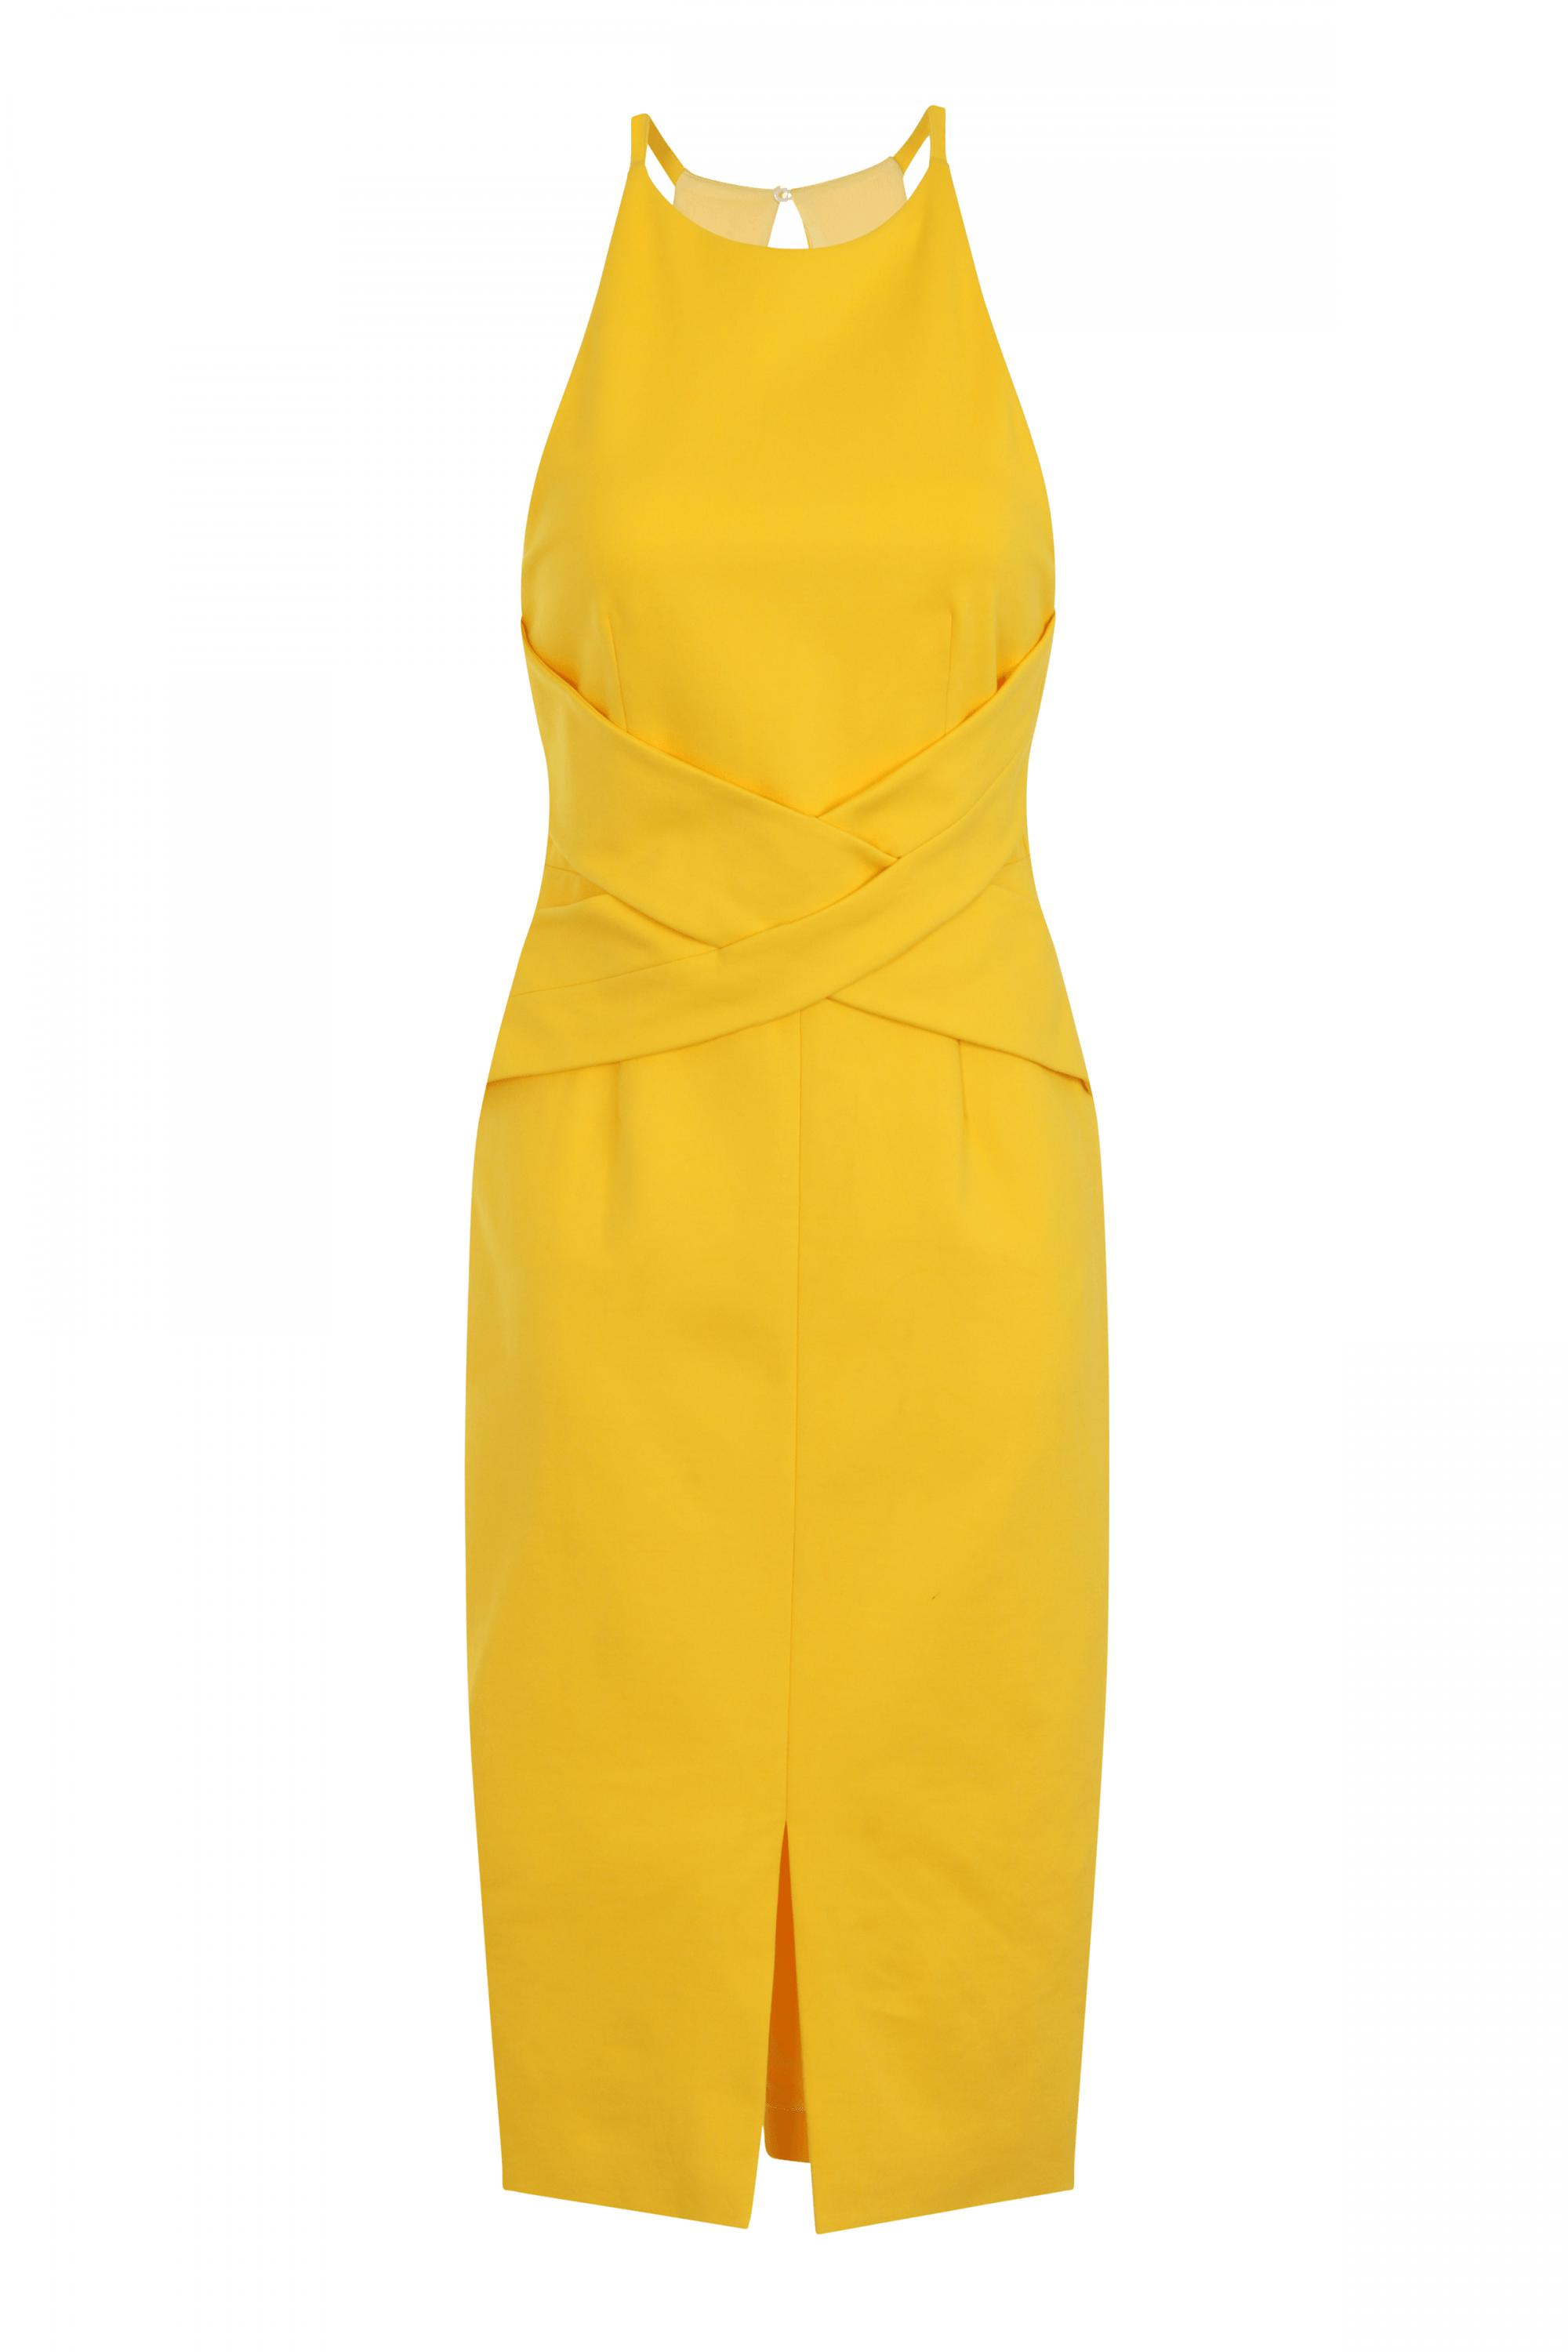 eaeaeae234 Gallery. Previously sold at  Lavish Alice · Women s Yellow Dresses ...